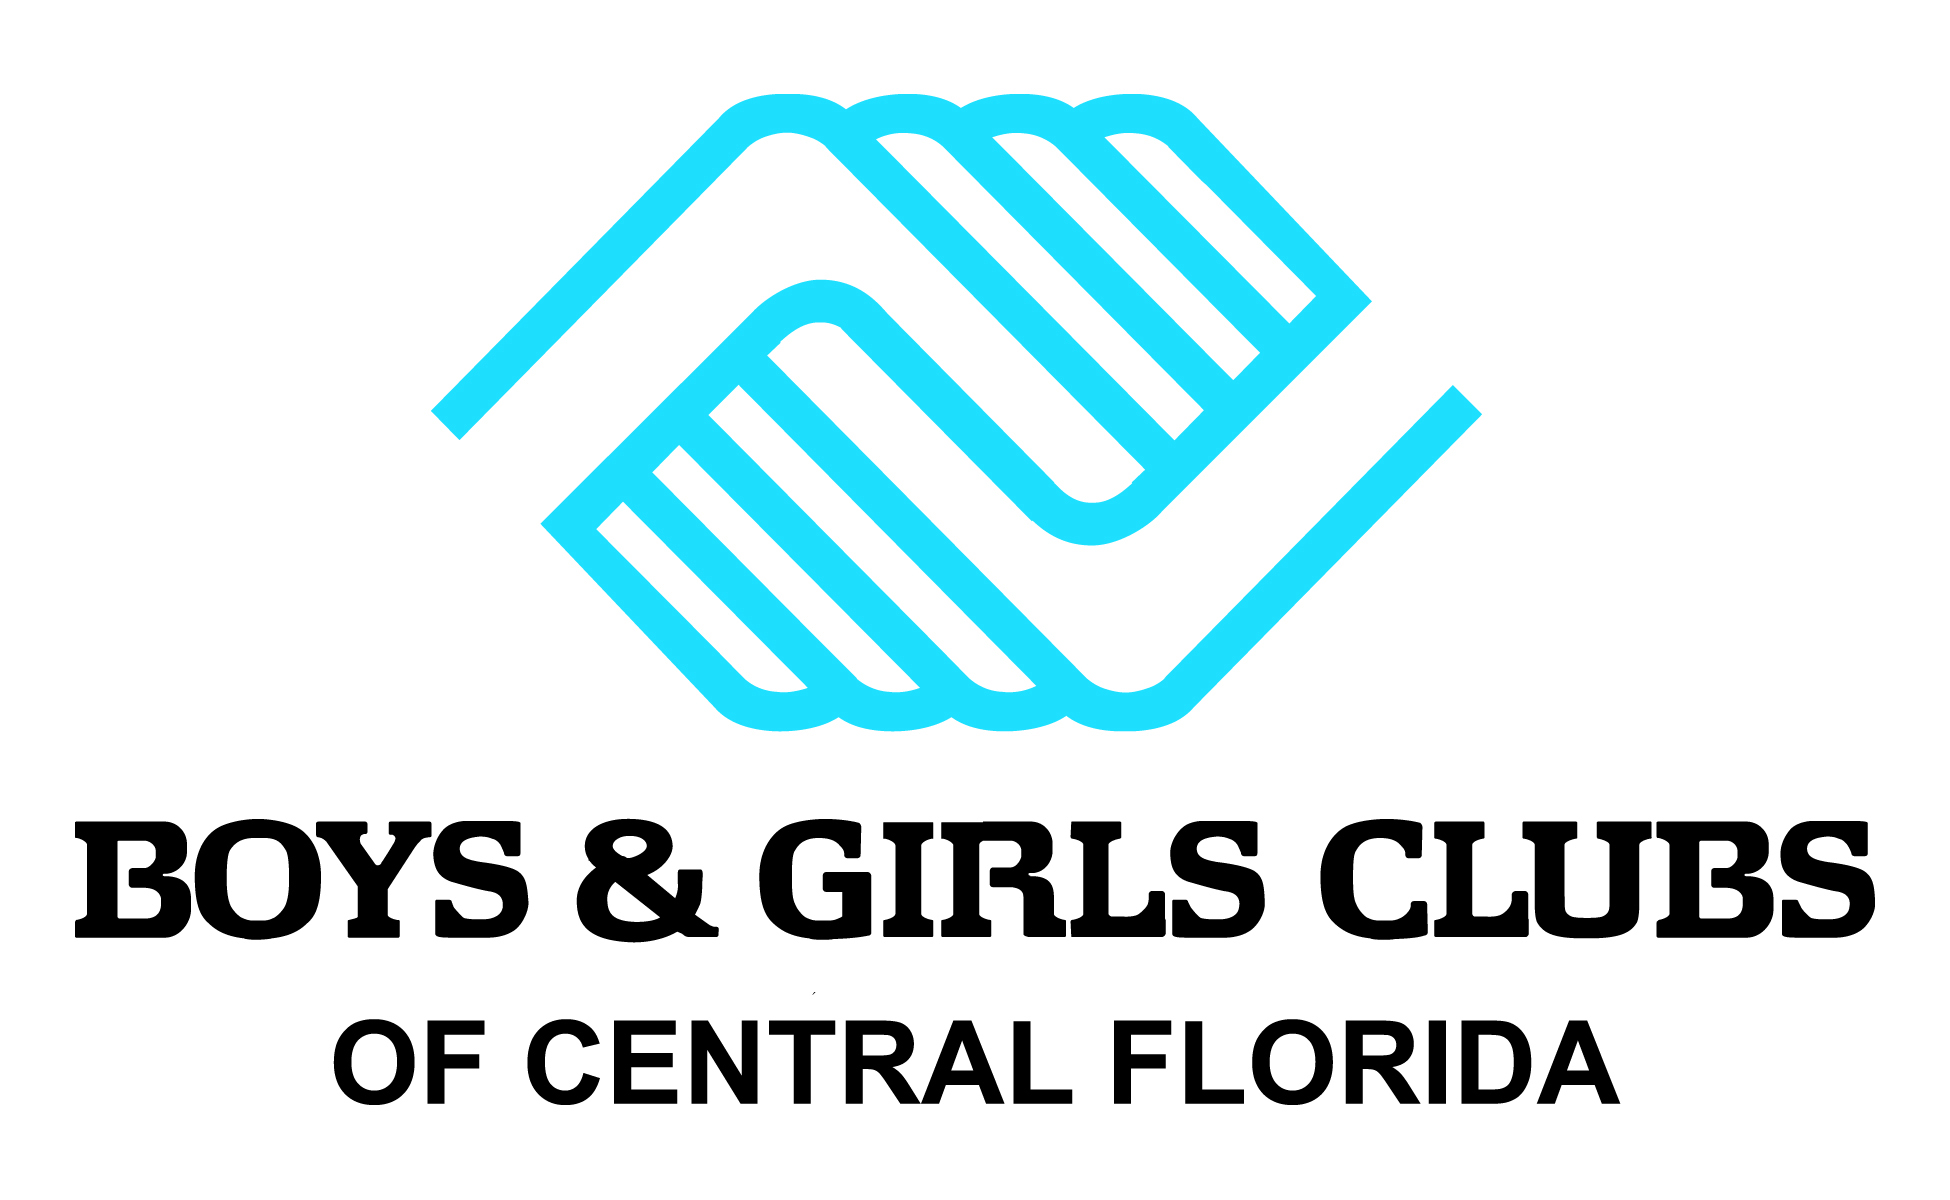 Central florida christian singles activities Miami - Wikipedia